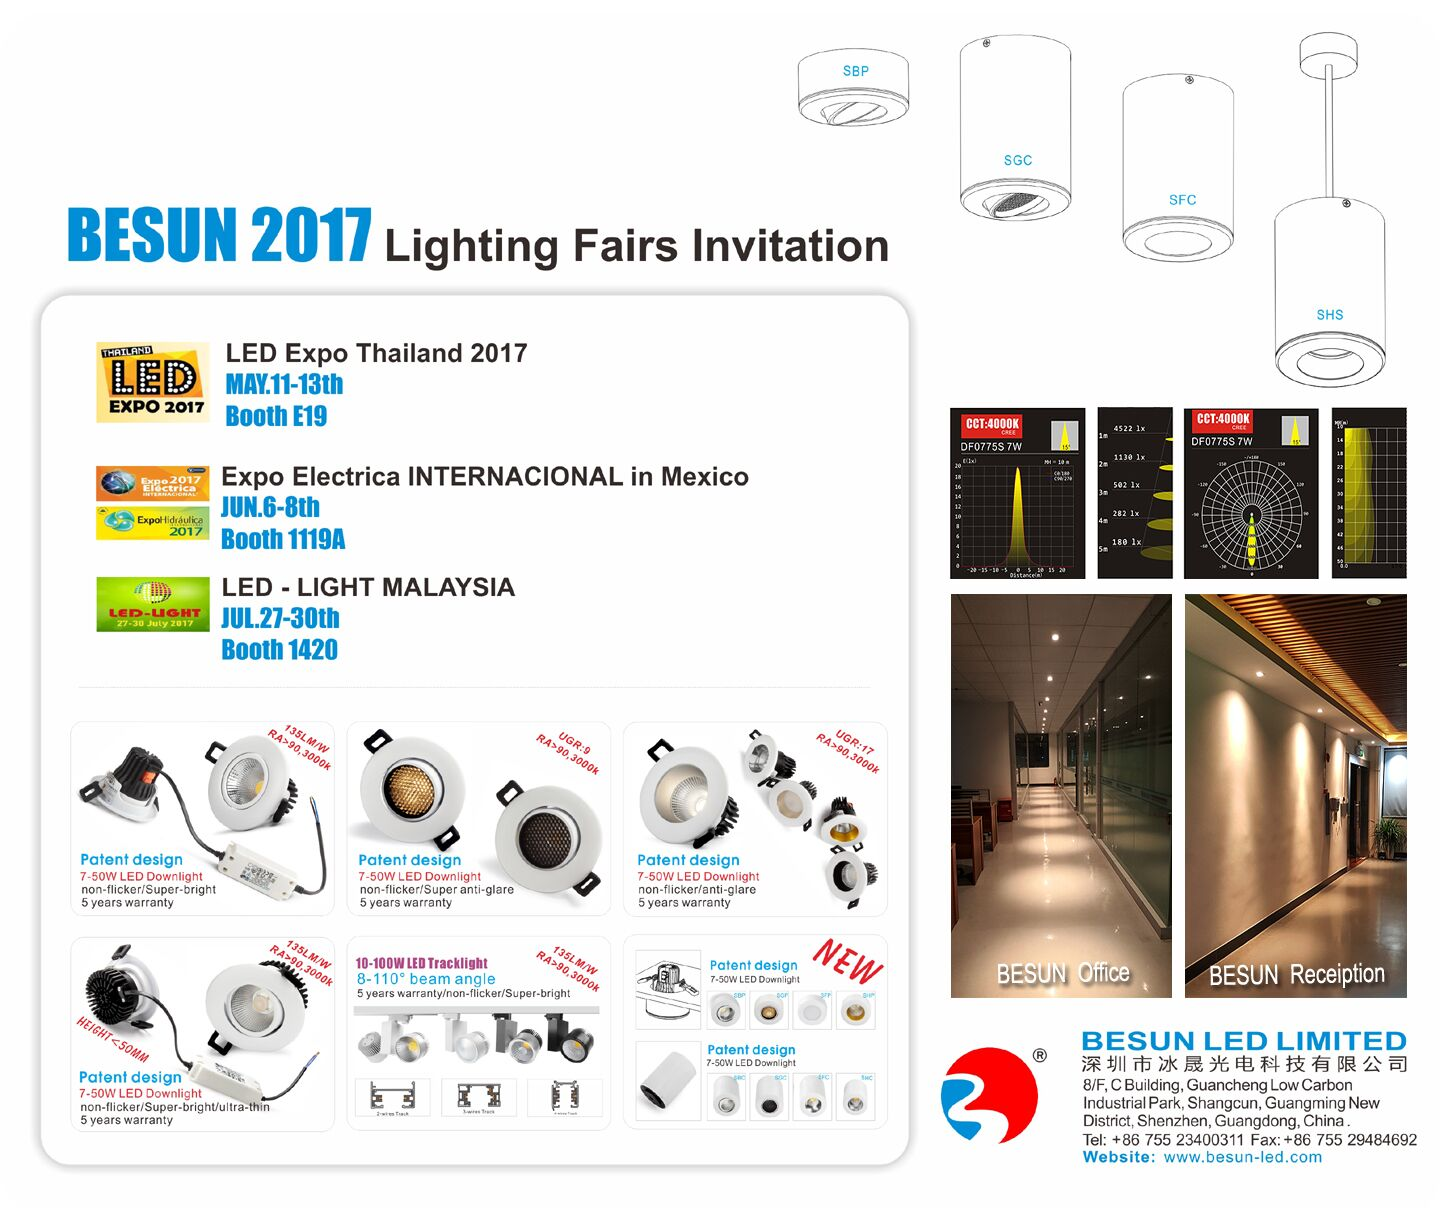 BESUN 2017 Lighting Fairs Invitation in Thailand, Mexico, Malaysia